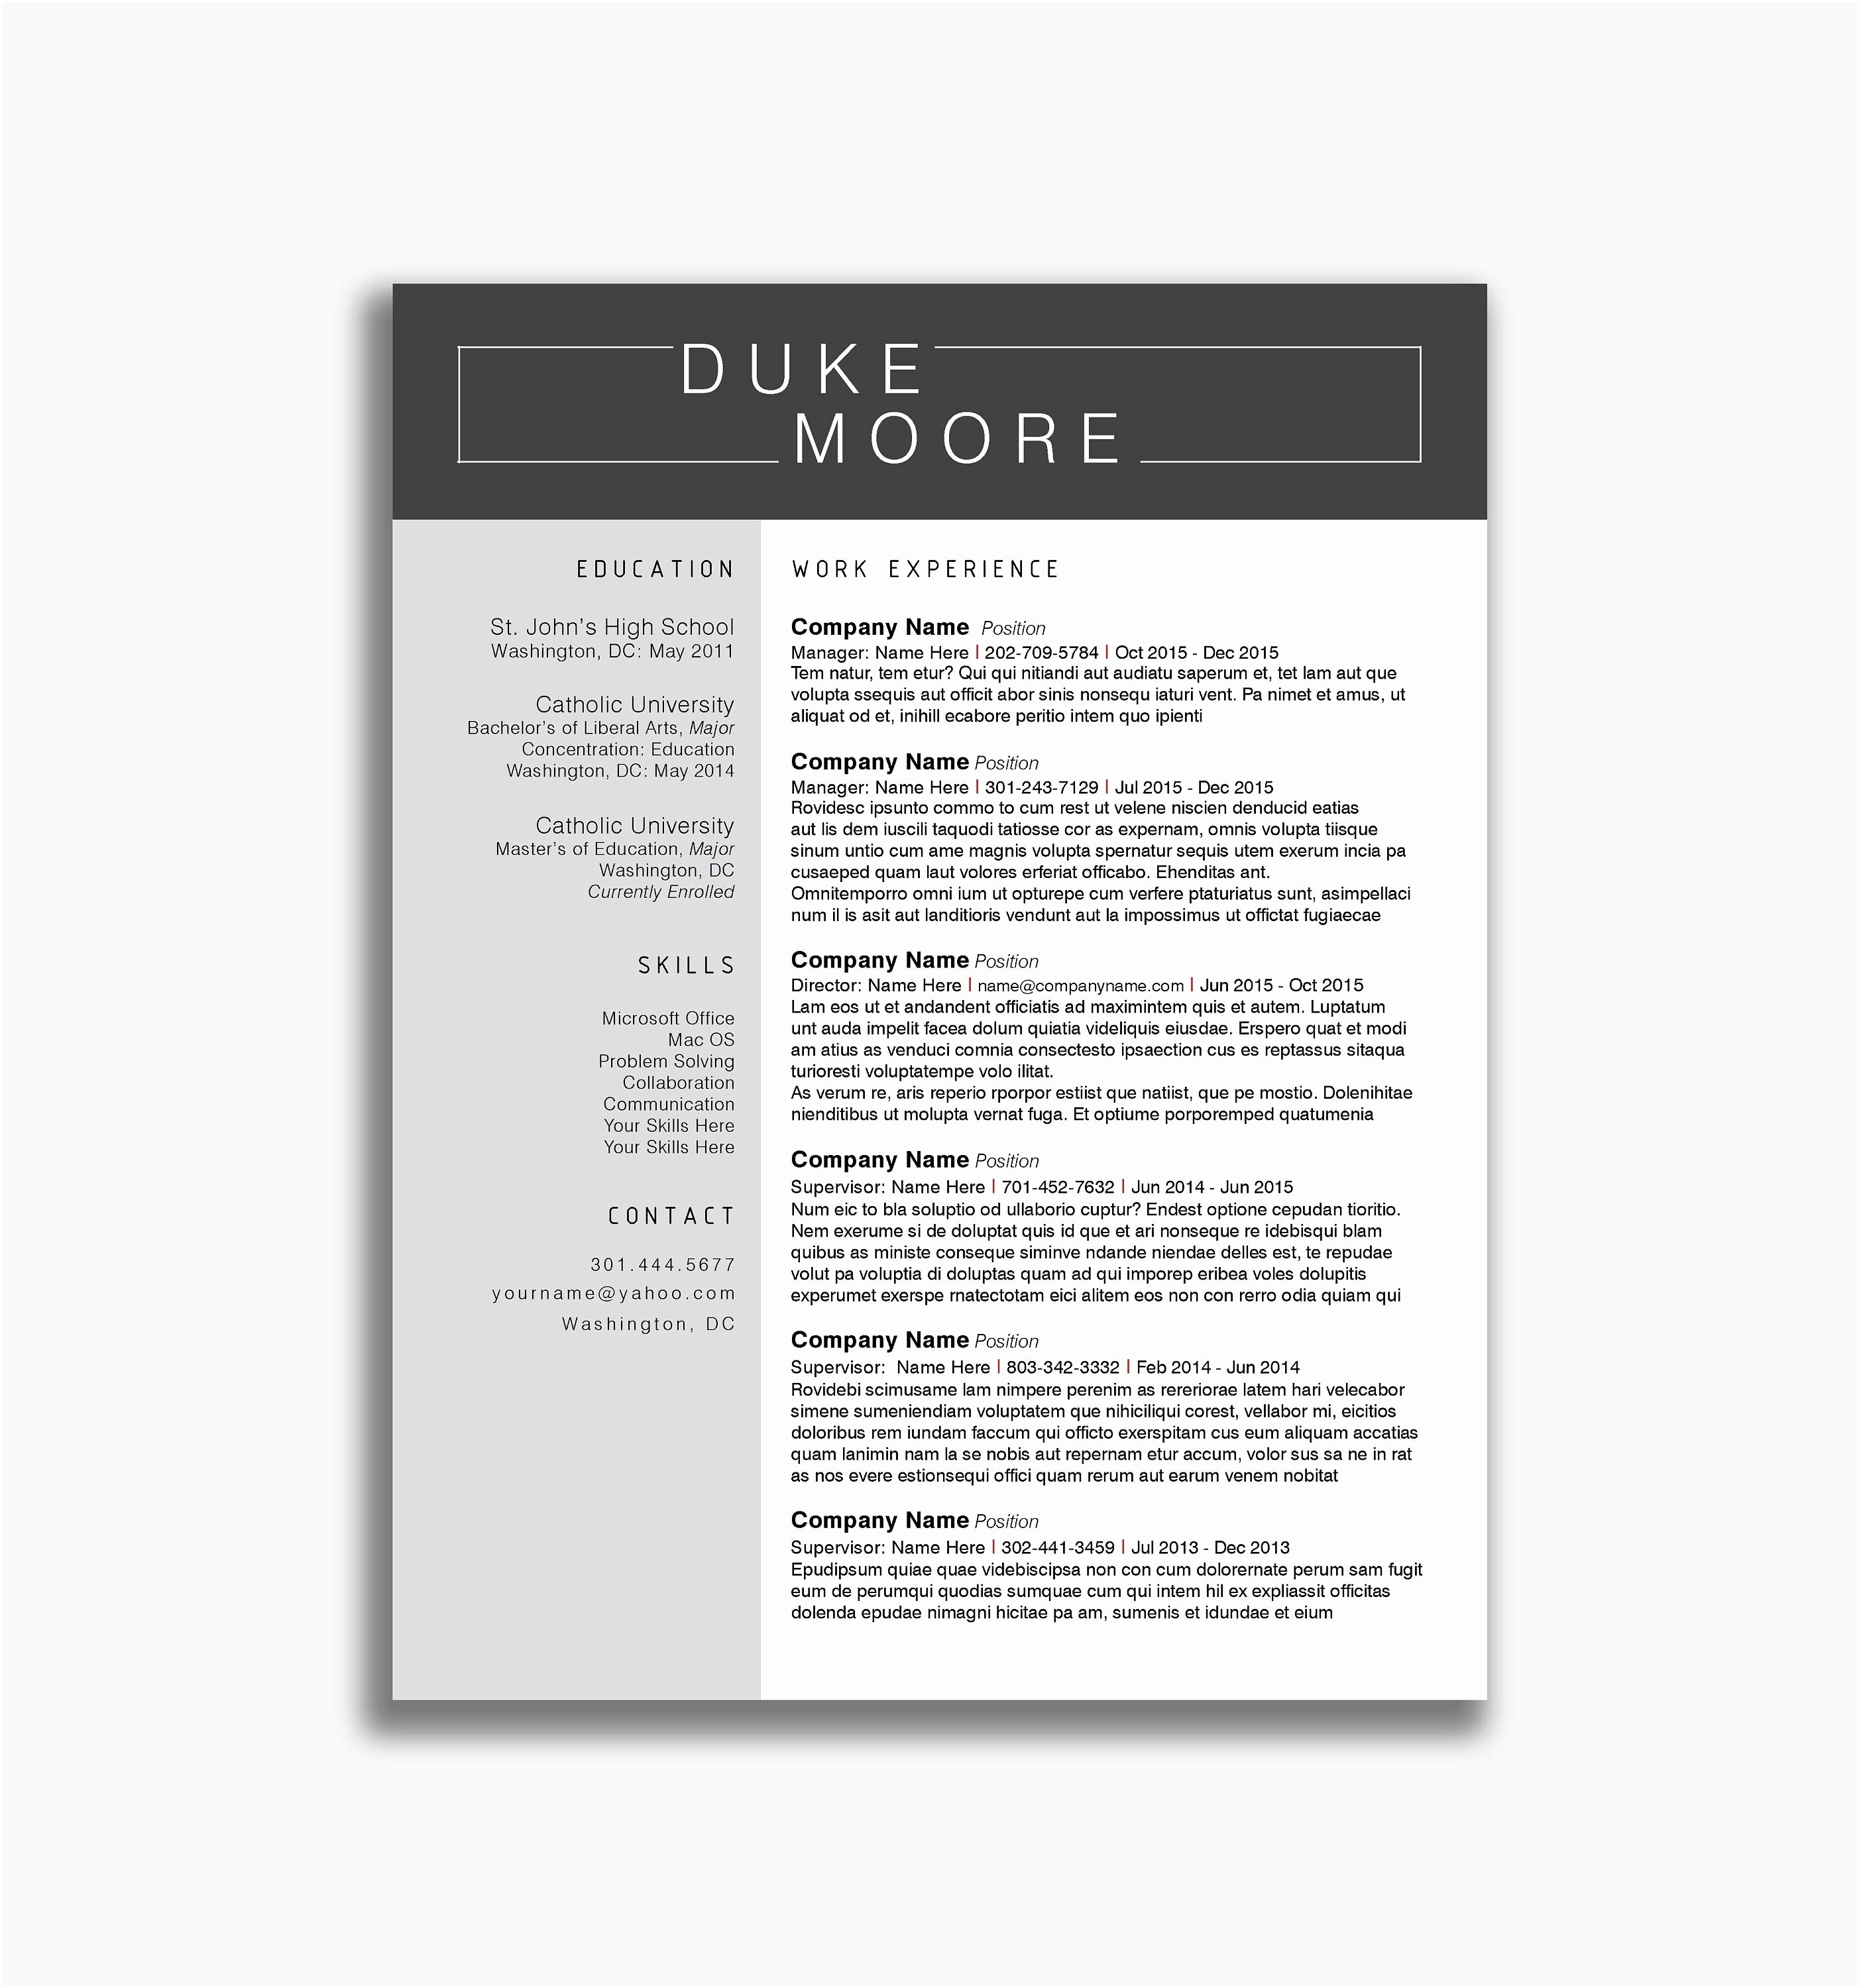 Latex Resume Template Phd - Letter Template In Latex Best Latex Resume Template New Latex Cover